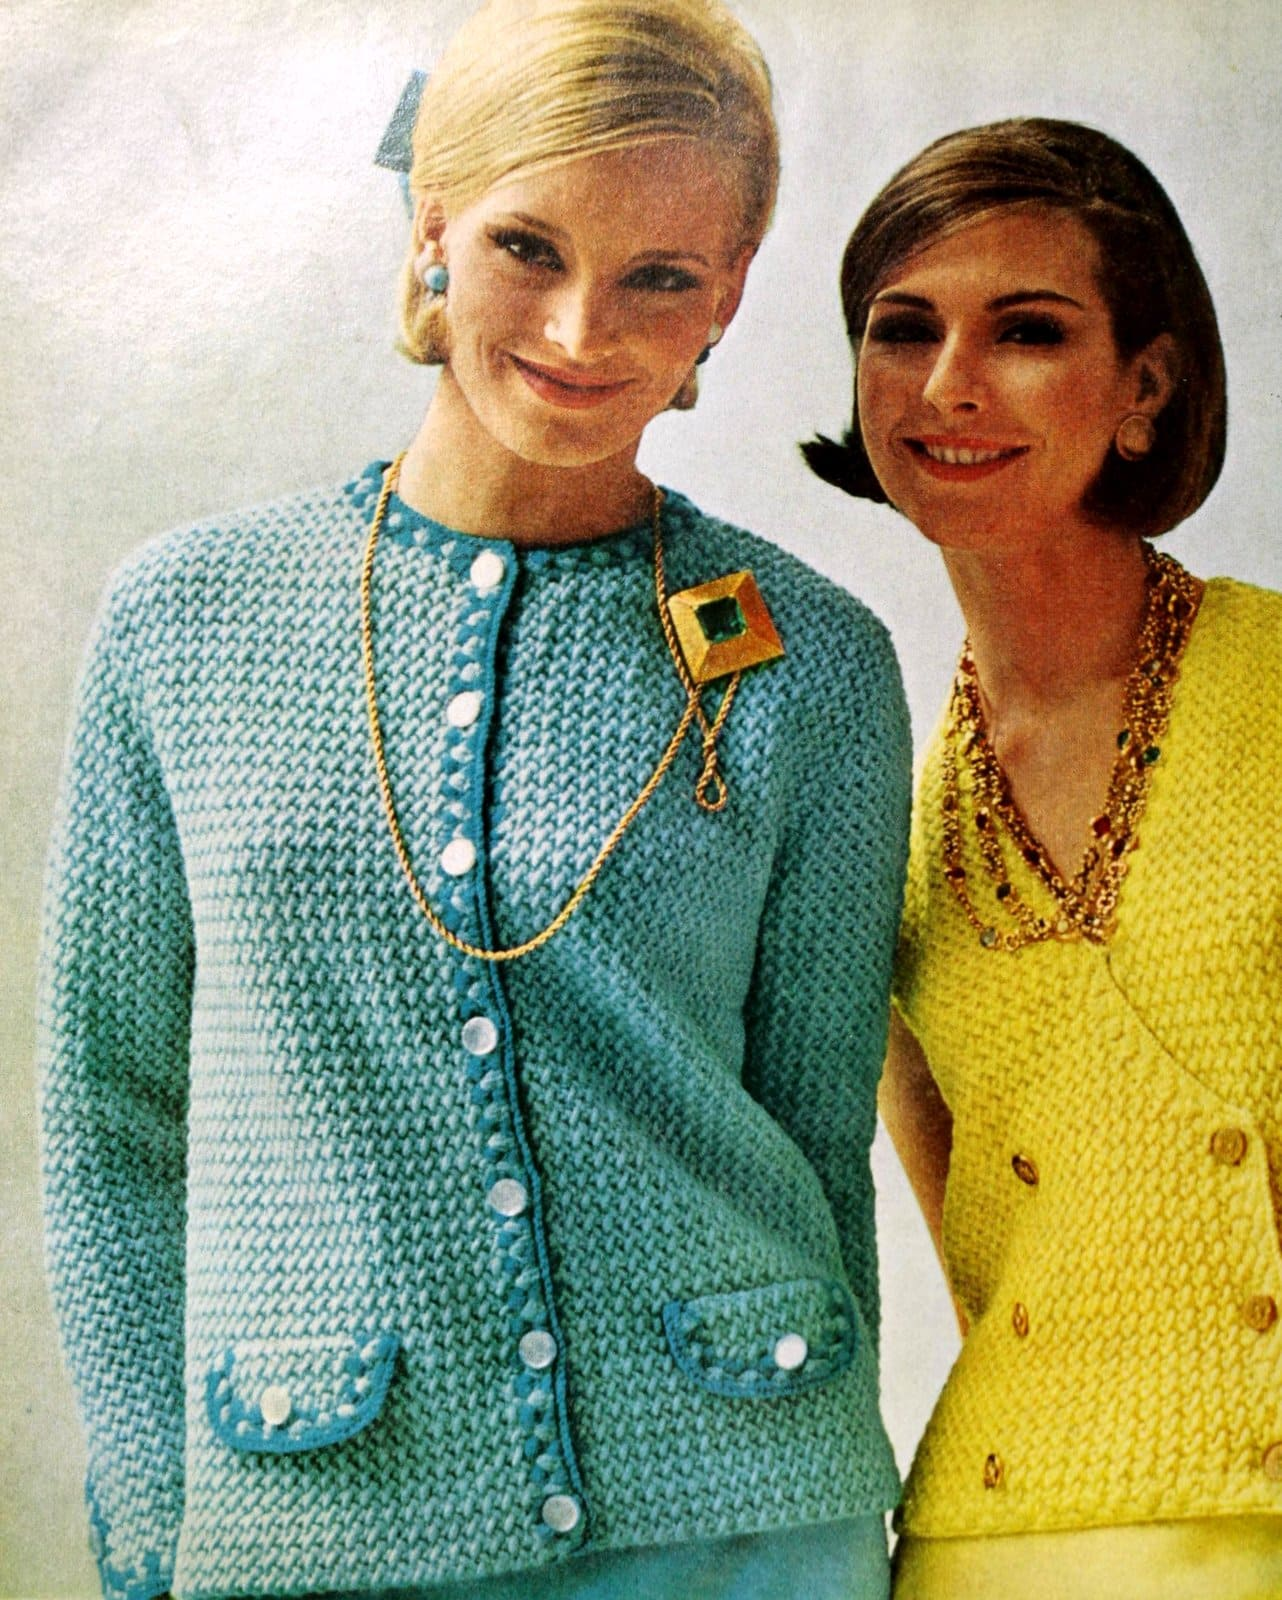 Vintage bright sweater fashions from Jantzen in 1964 (1)